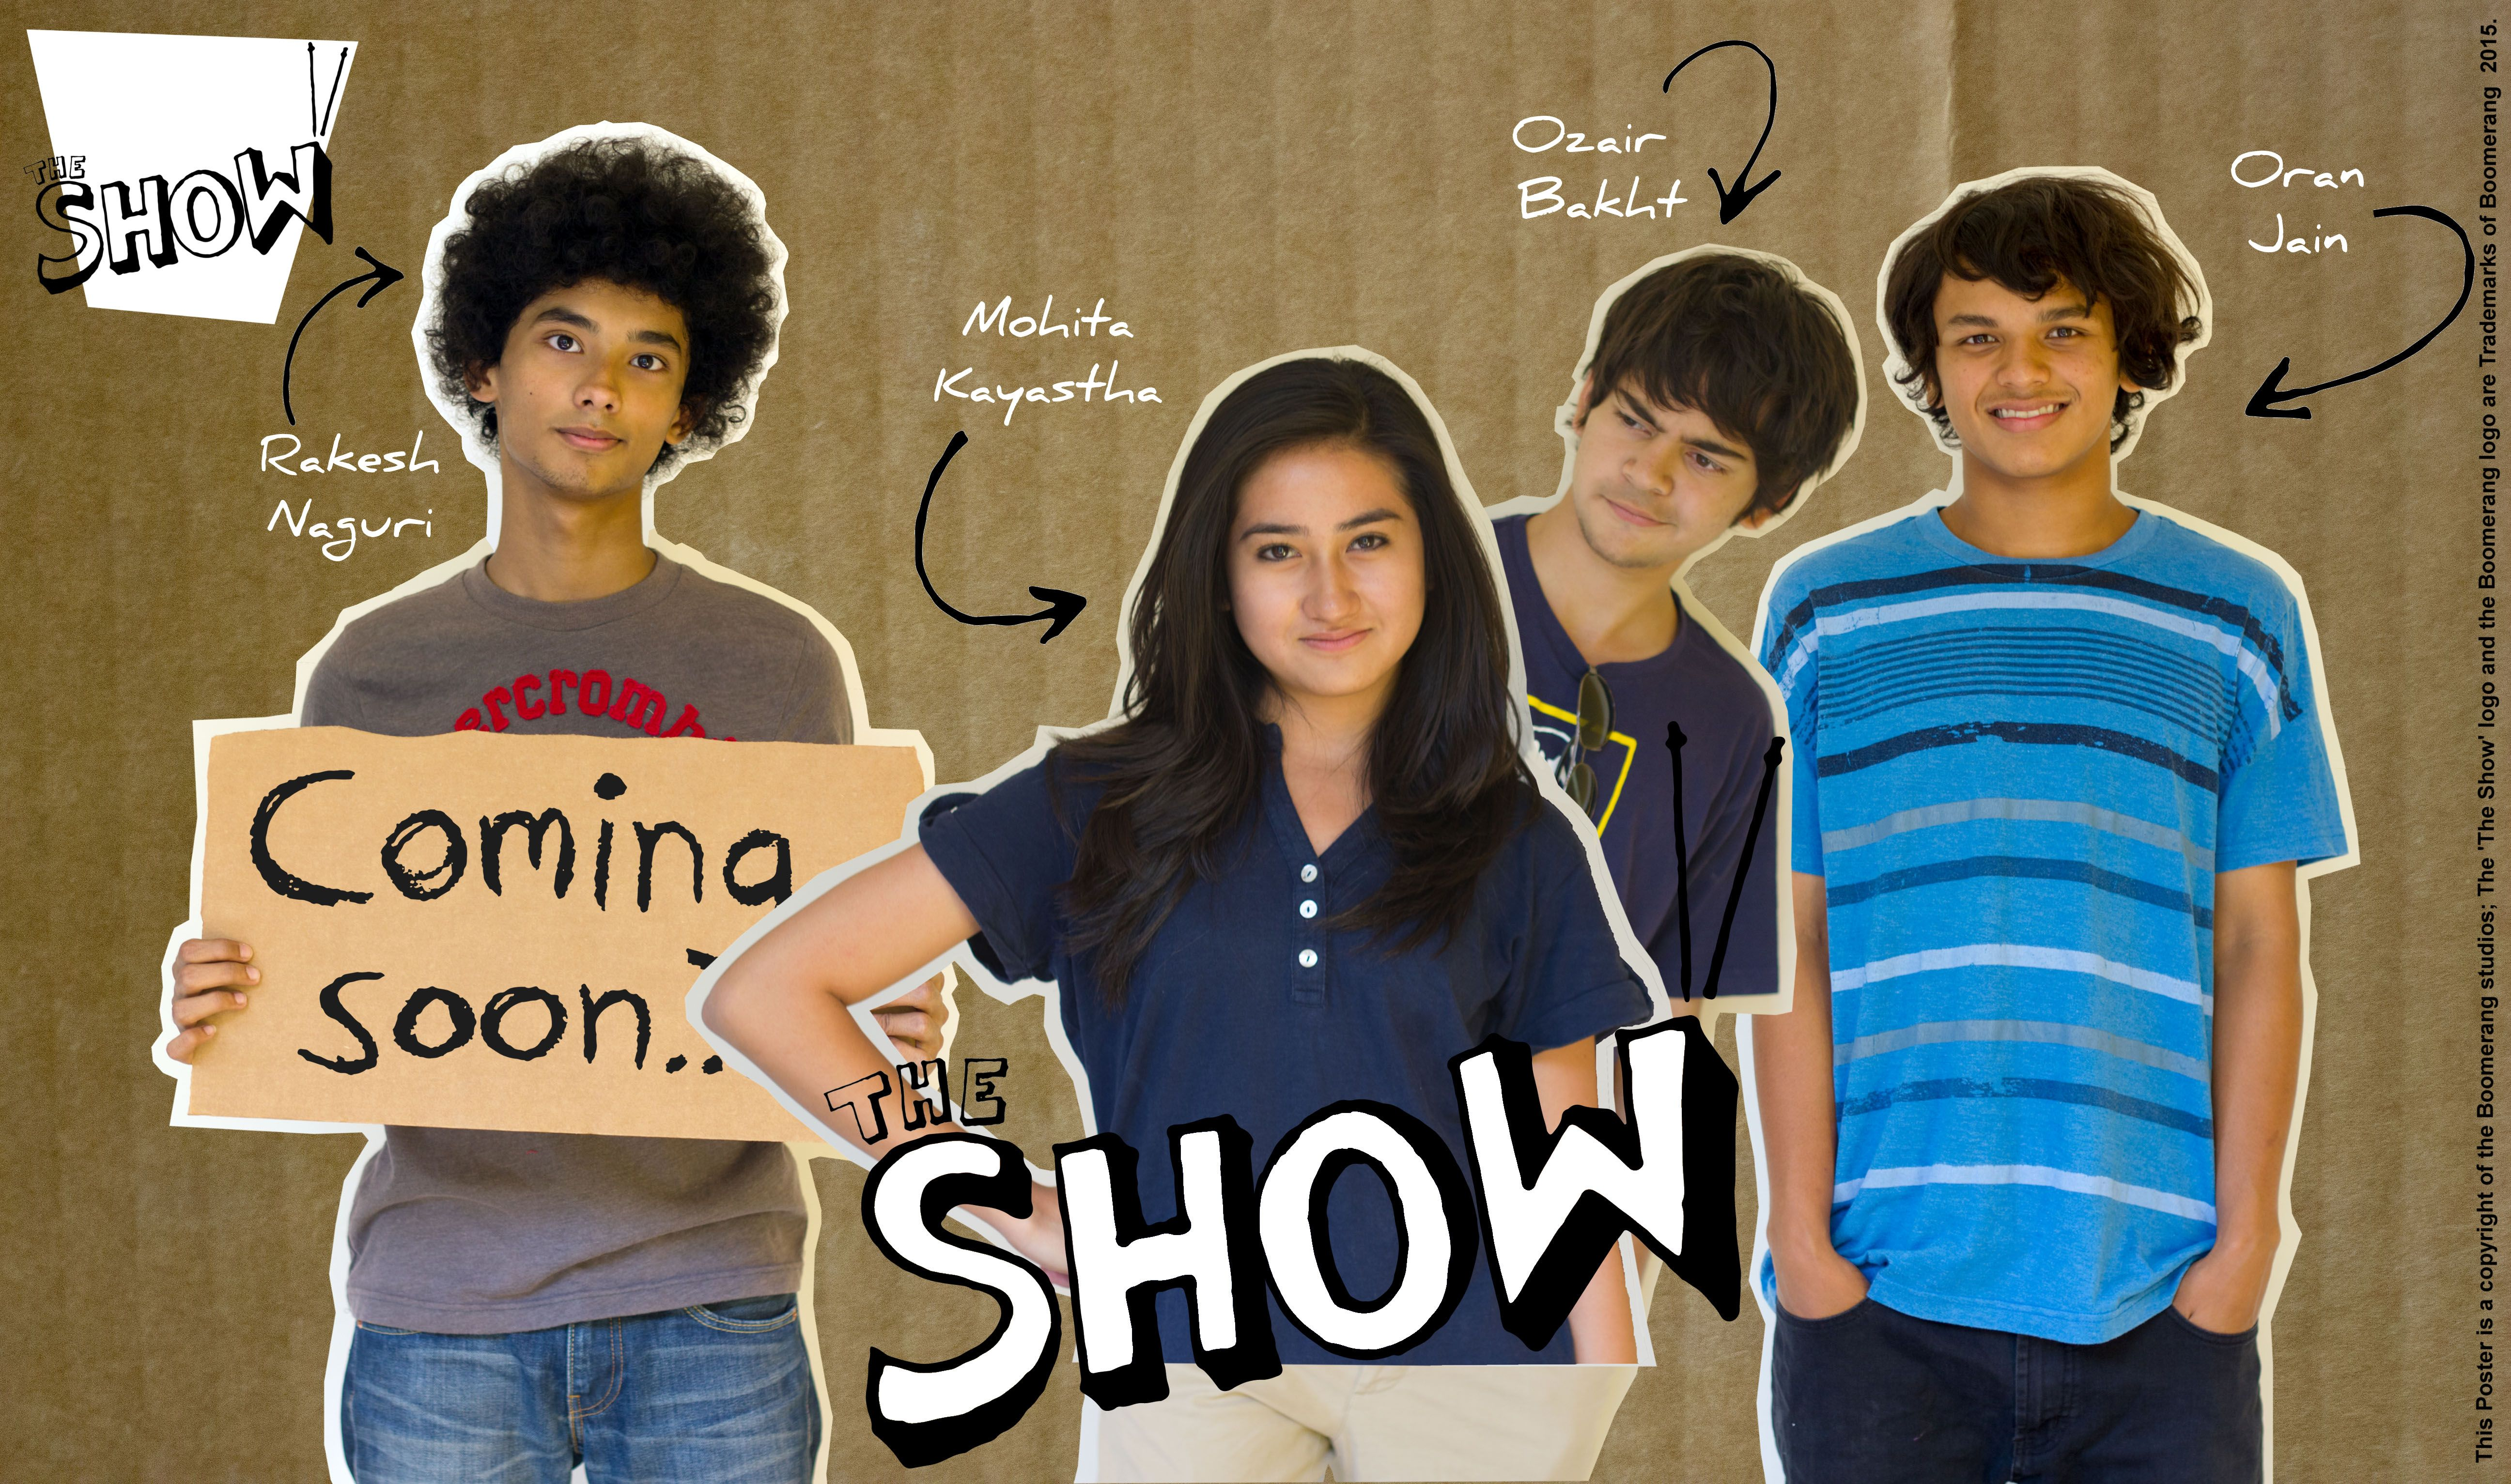 The Show Promo Poster